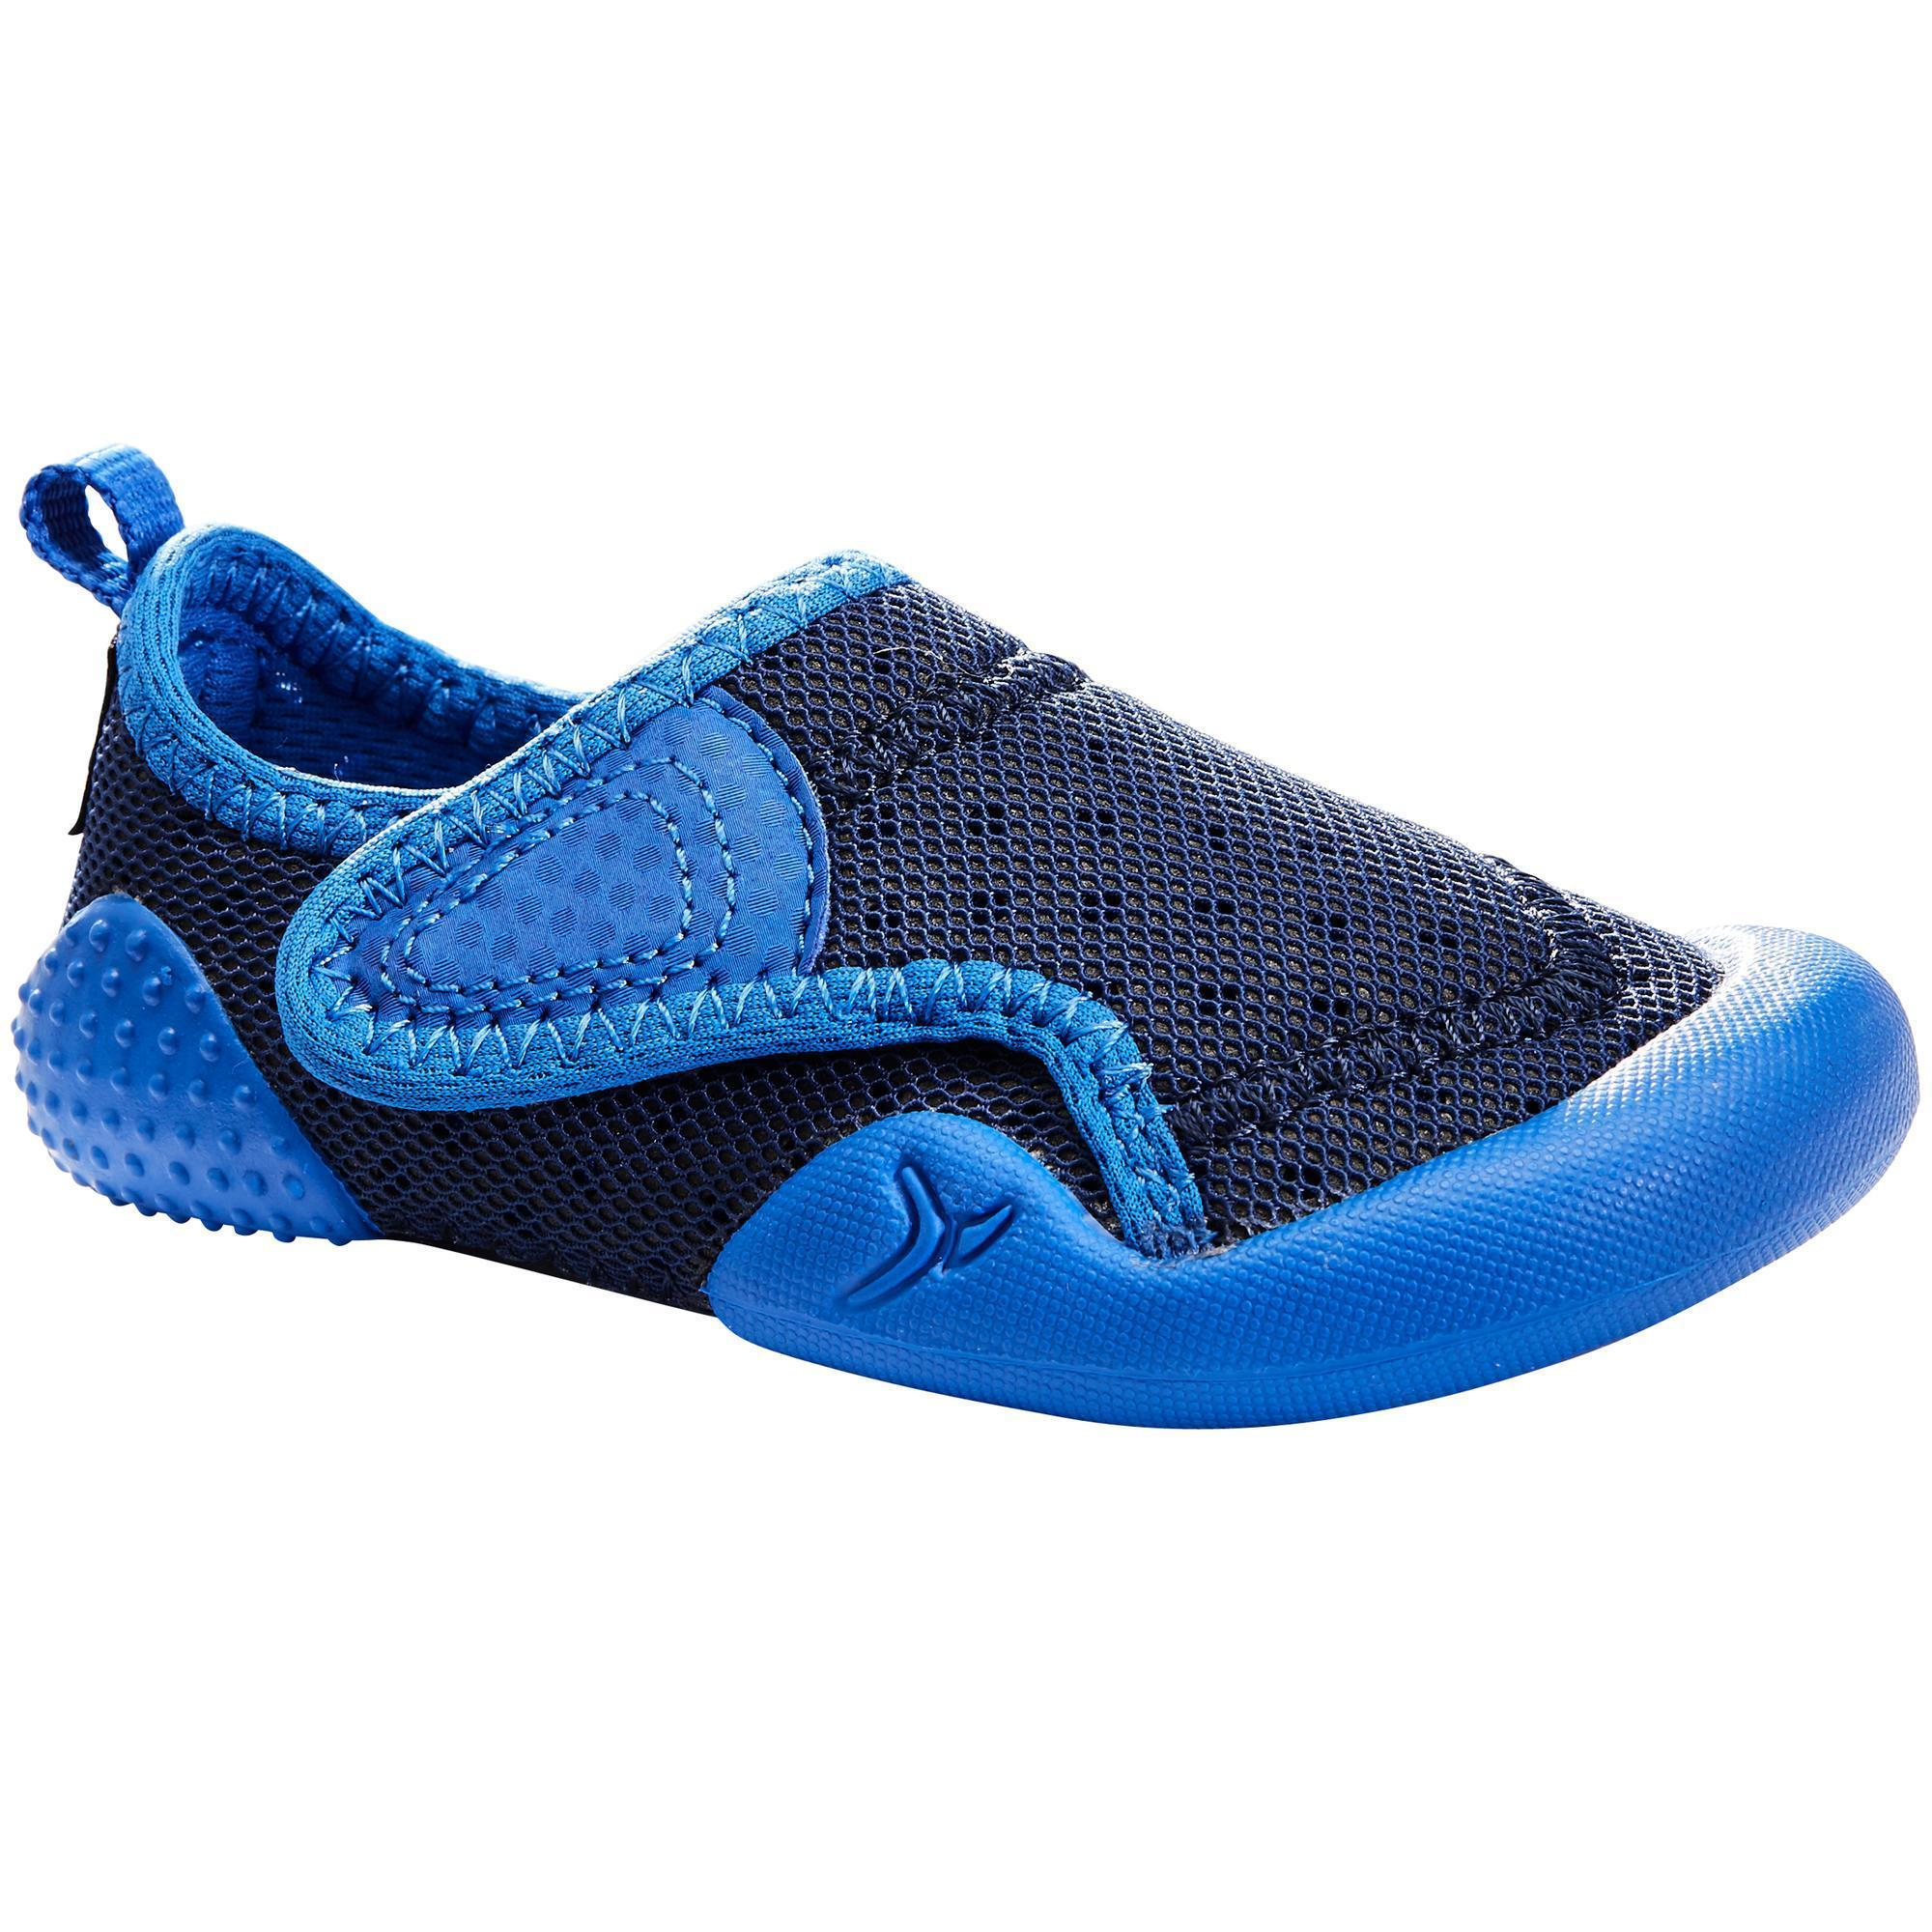 chaussons 500 babylight gym bleu domyos by decathlon. Black Bedroom Furniture Sets. Home Design Ideas